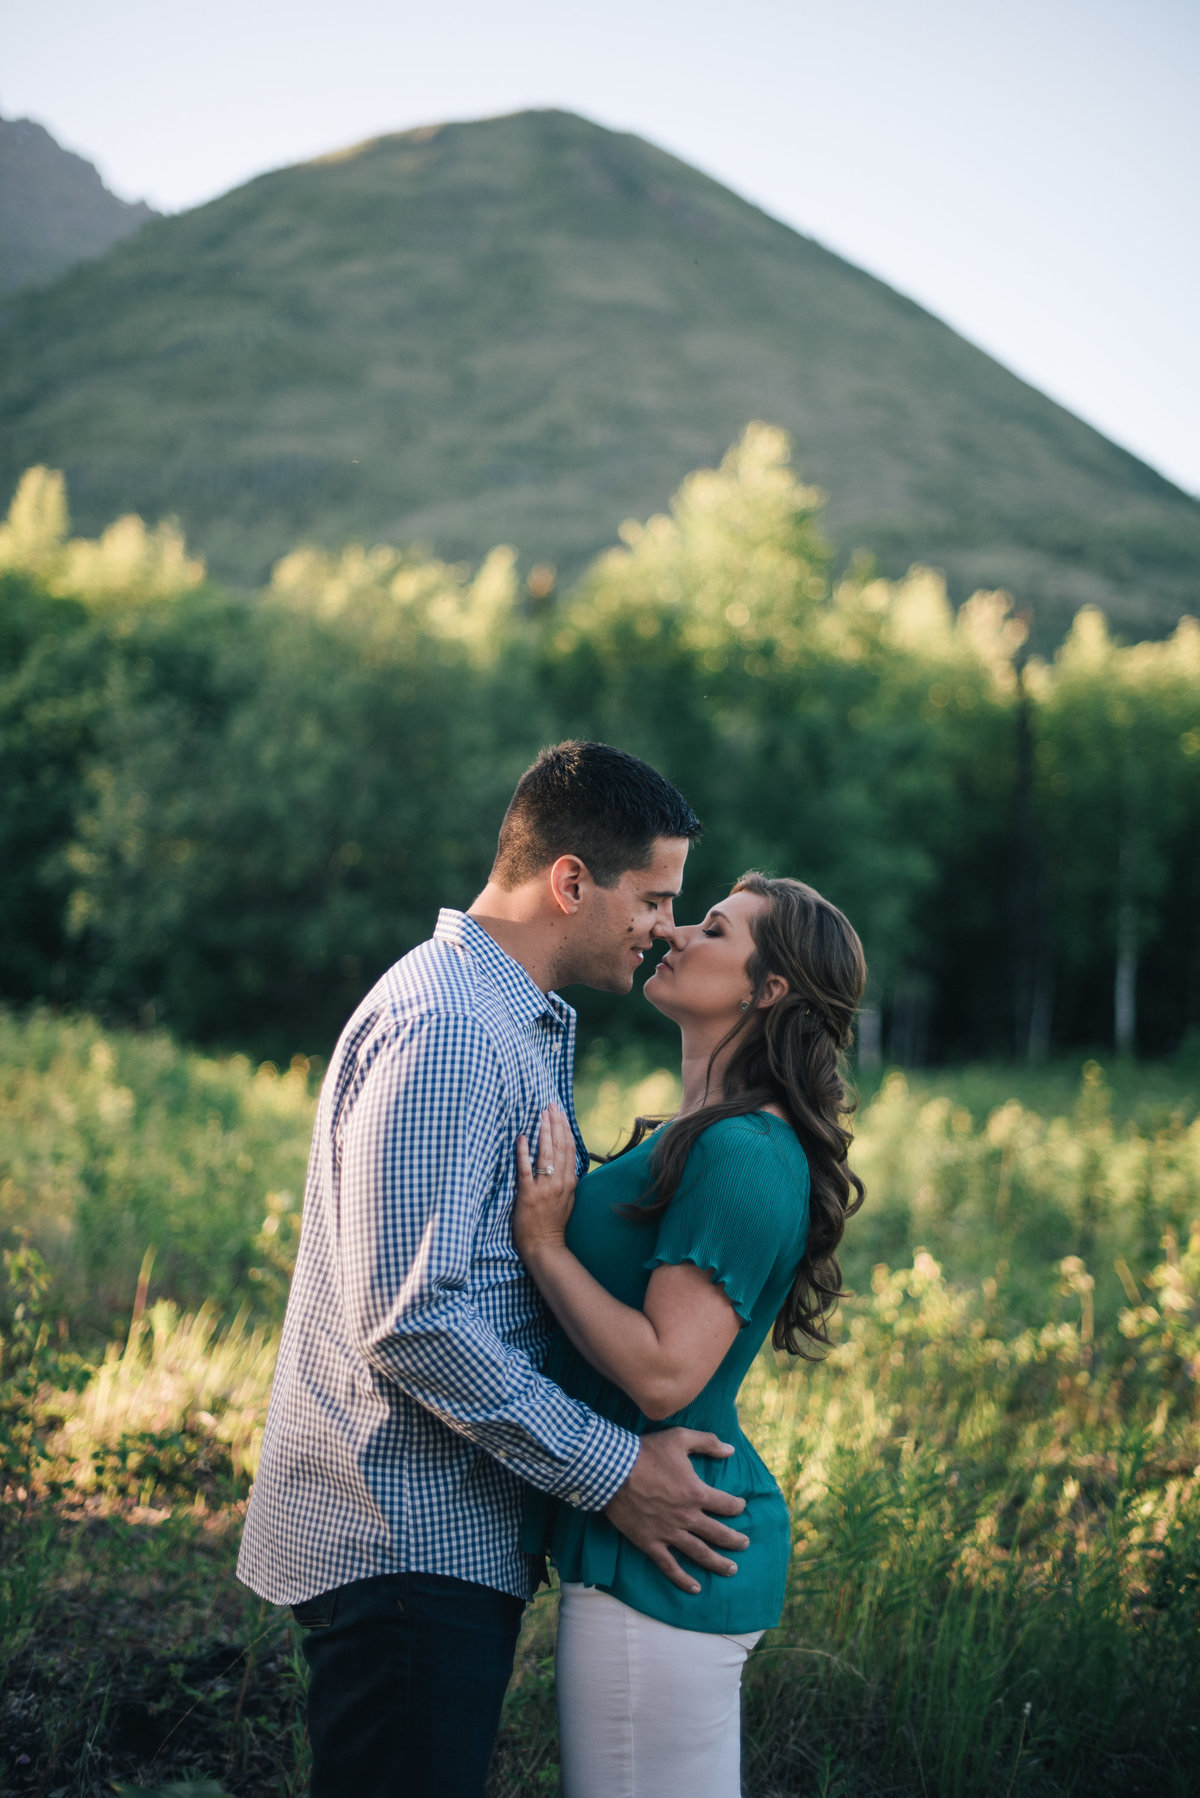 028_Erica Rose Photography_Anchorage Engagement Photographer